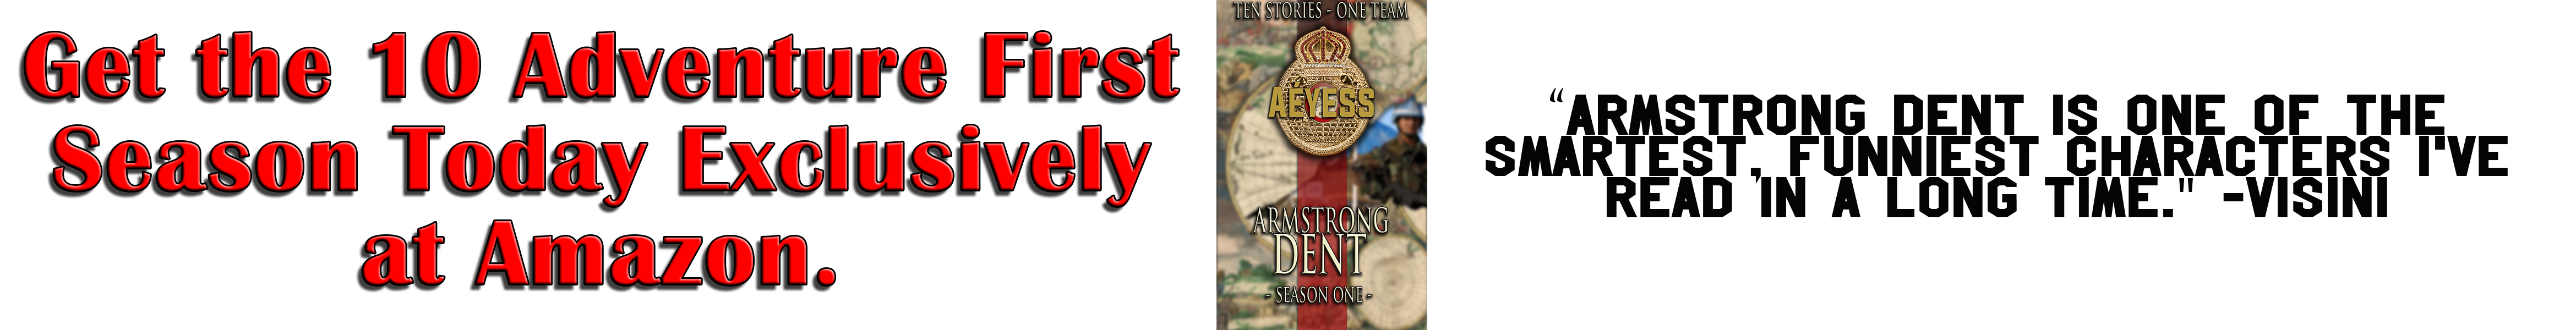 Armstrong Dent Exclusively on Amazon